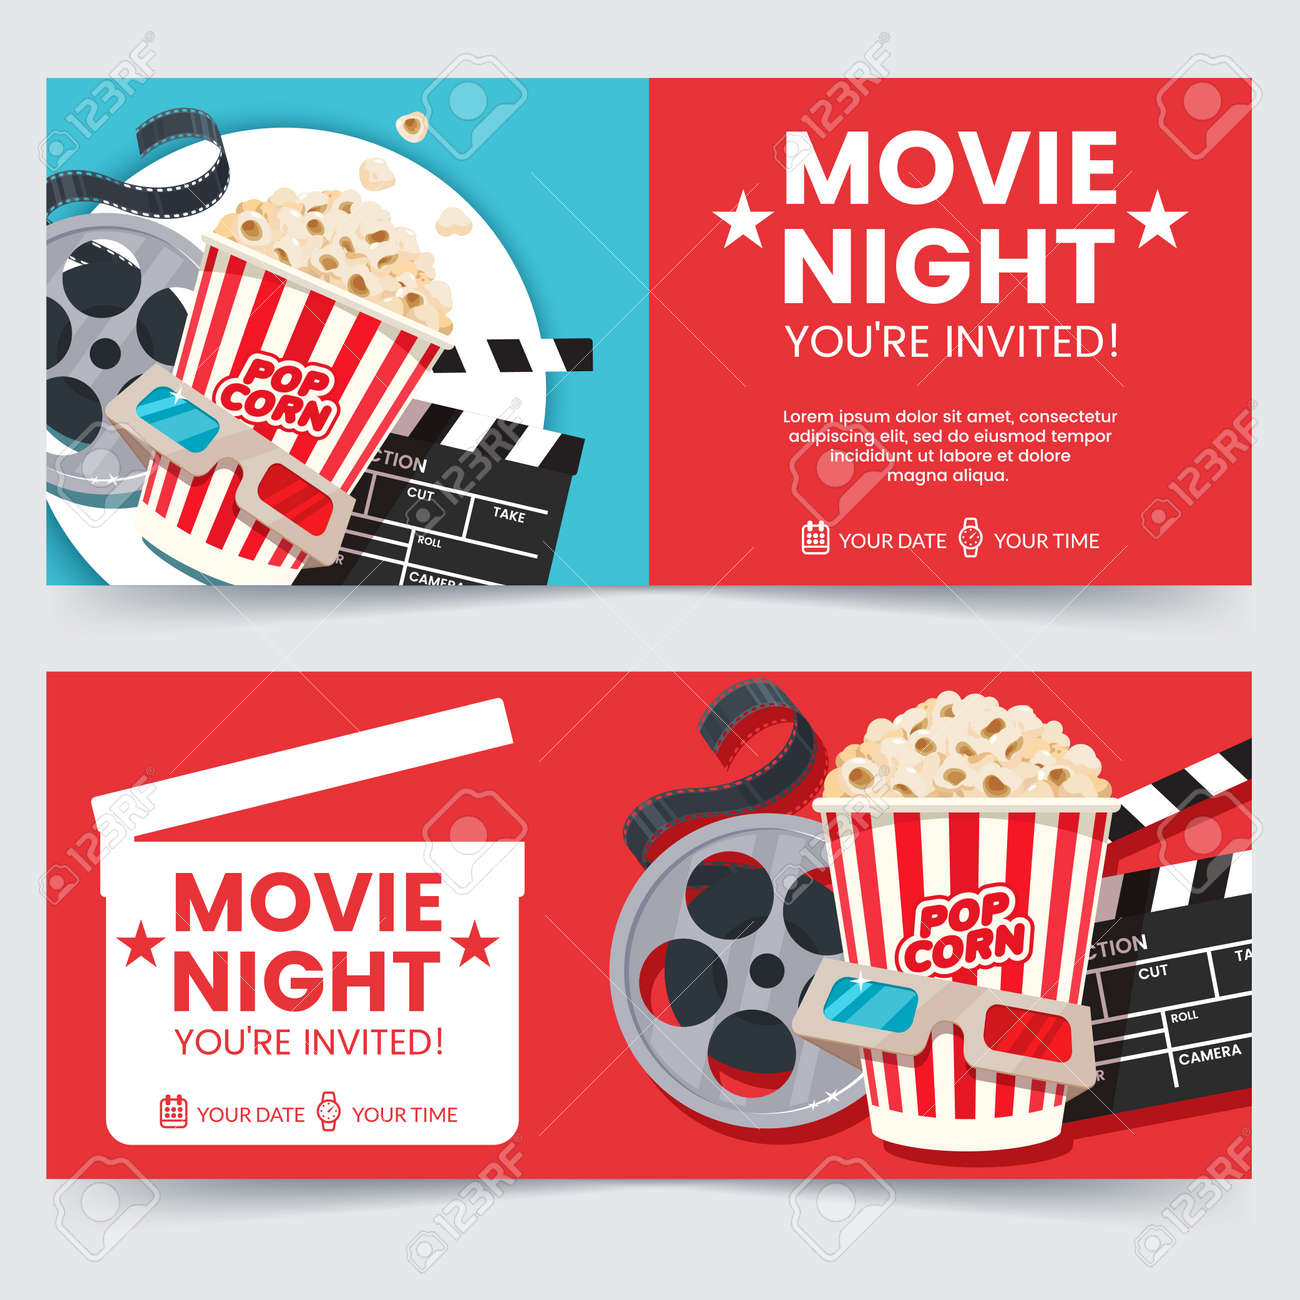 Cinema Tickets Design Concept Movie Night Invitation Cinema Royalty Free Cliparts Vectors And Stock Illustration Image 95503077